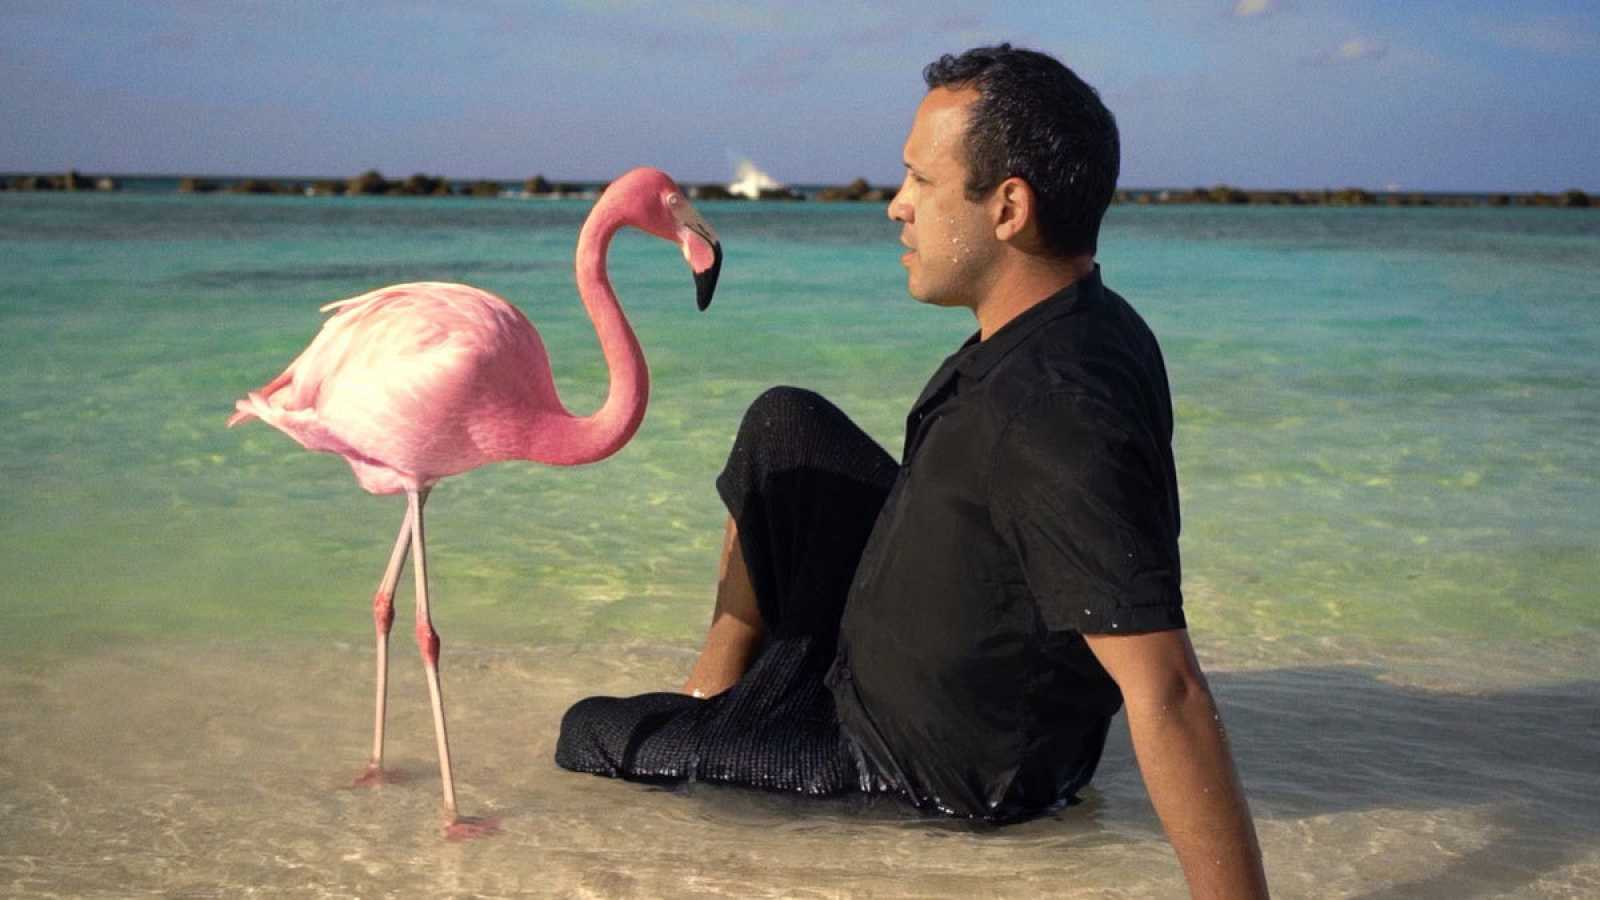 The mystery of the Pink Flamingo', para encontrarse a uno mismo